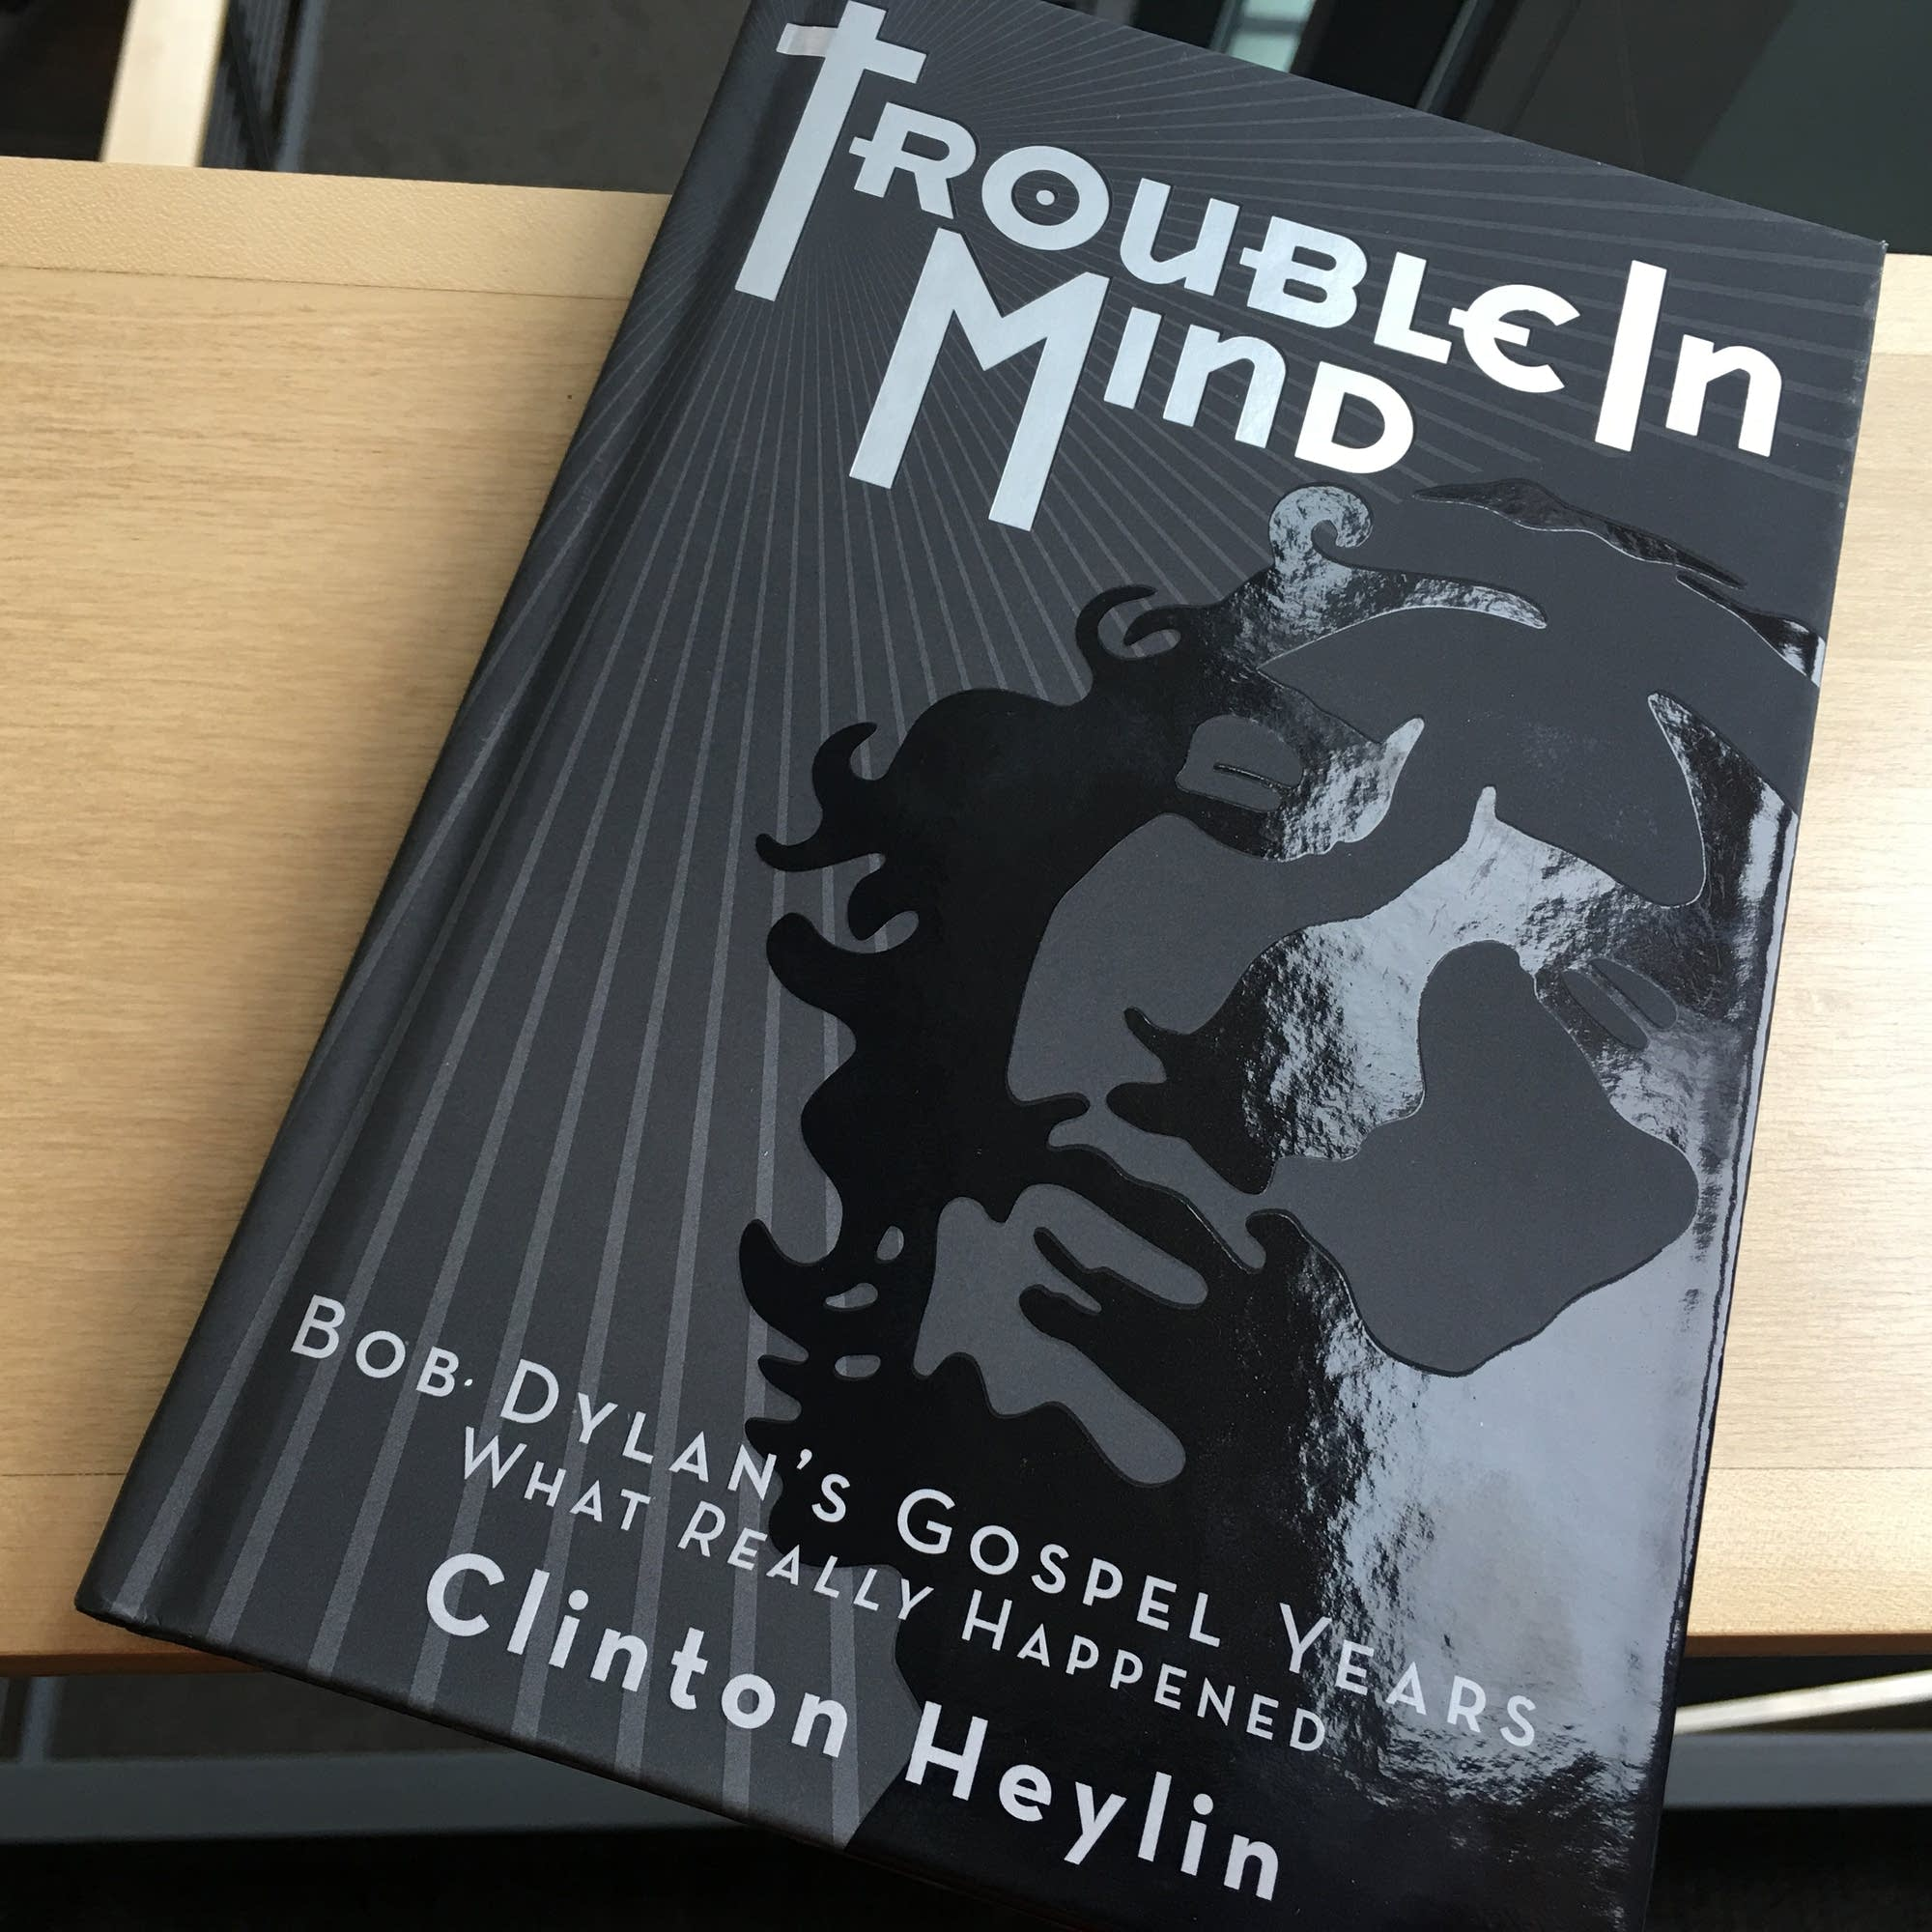 Clinton Heylin's 'Trouble in Mind.'